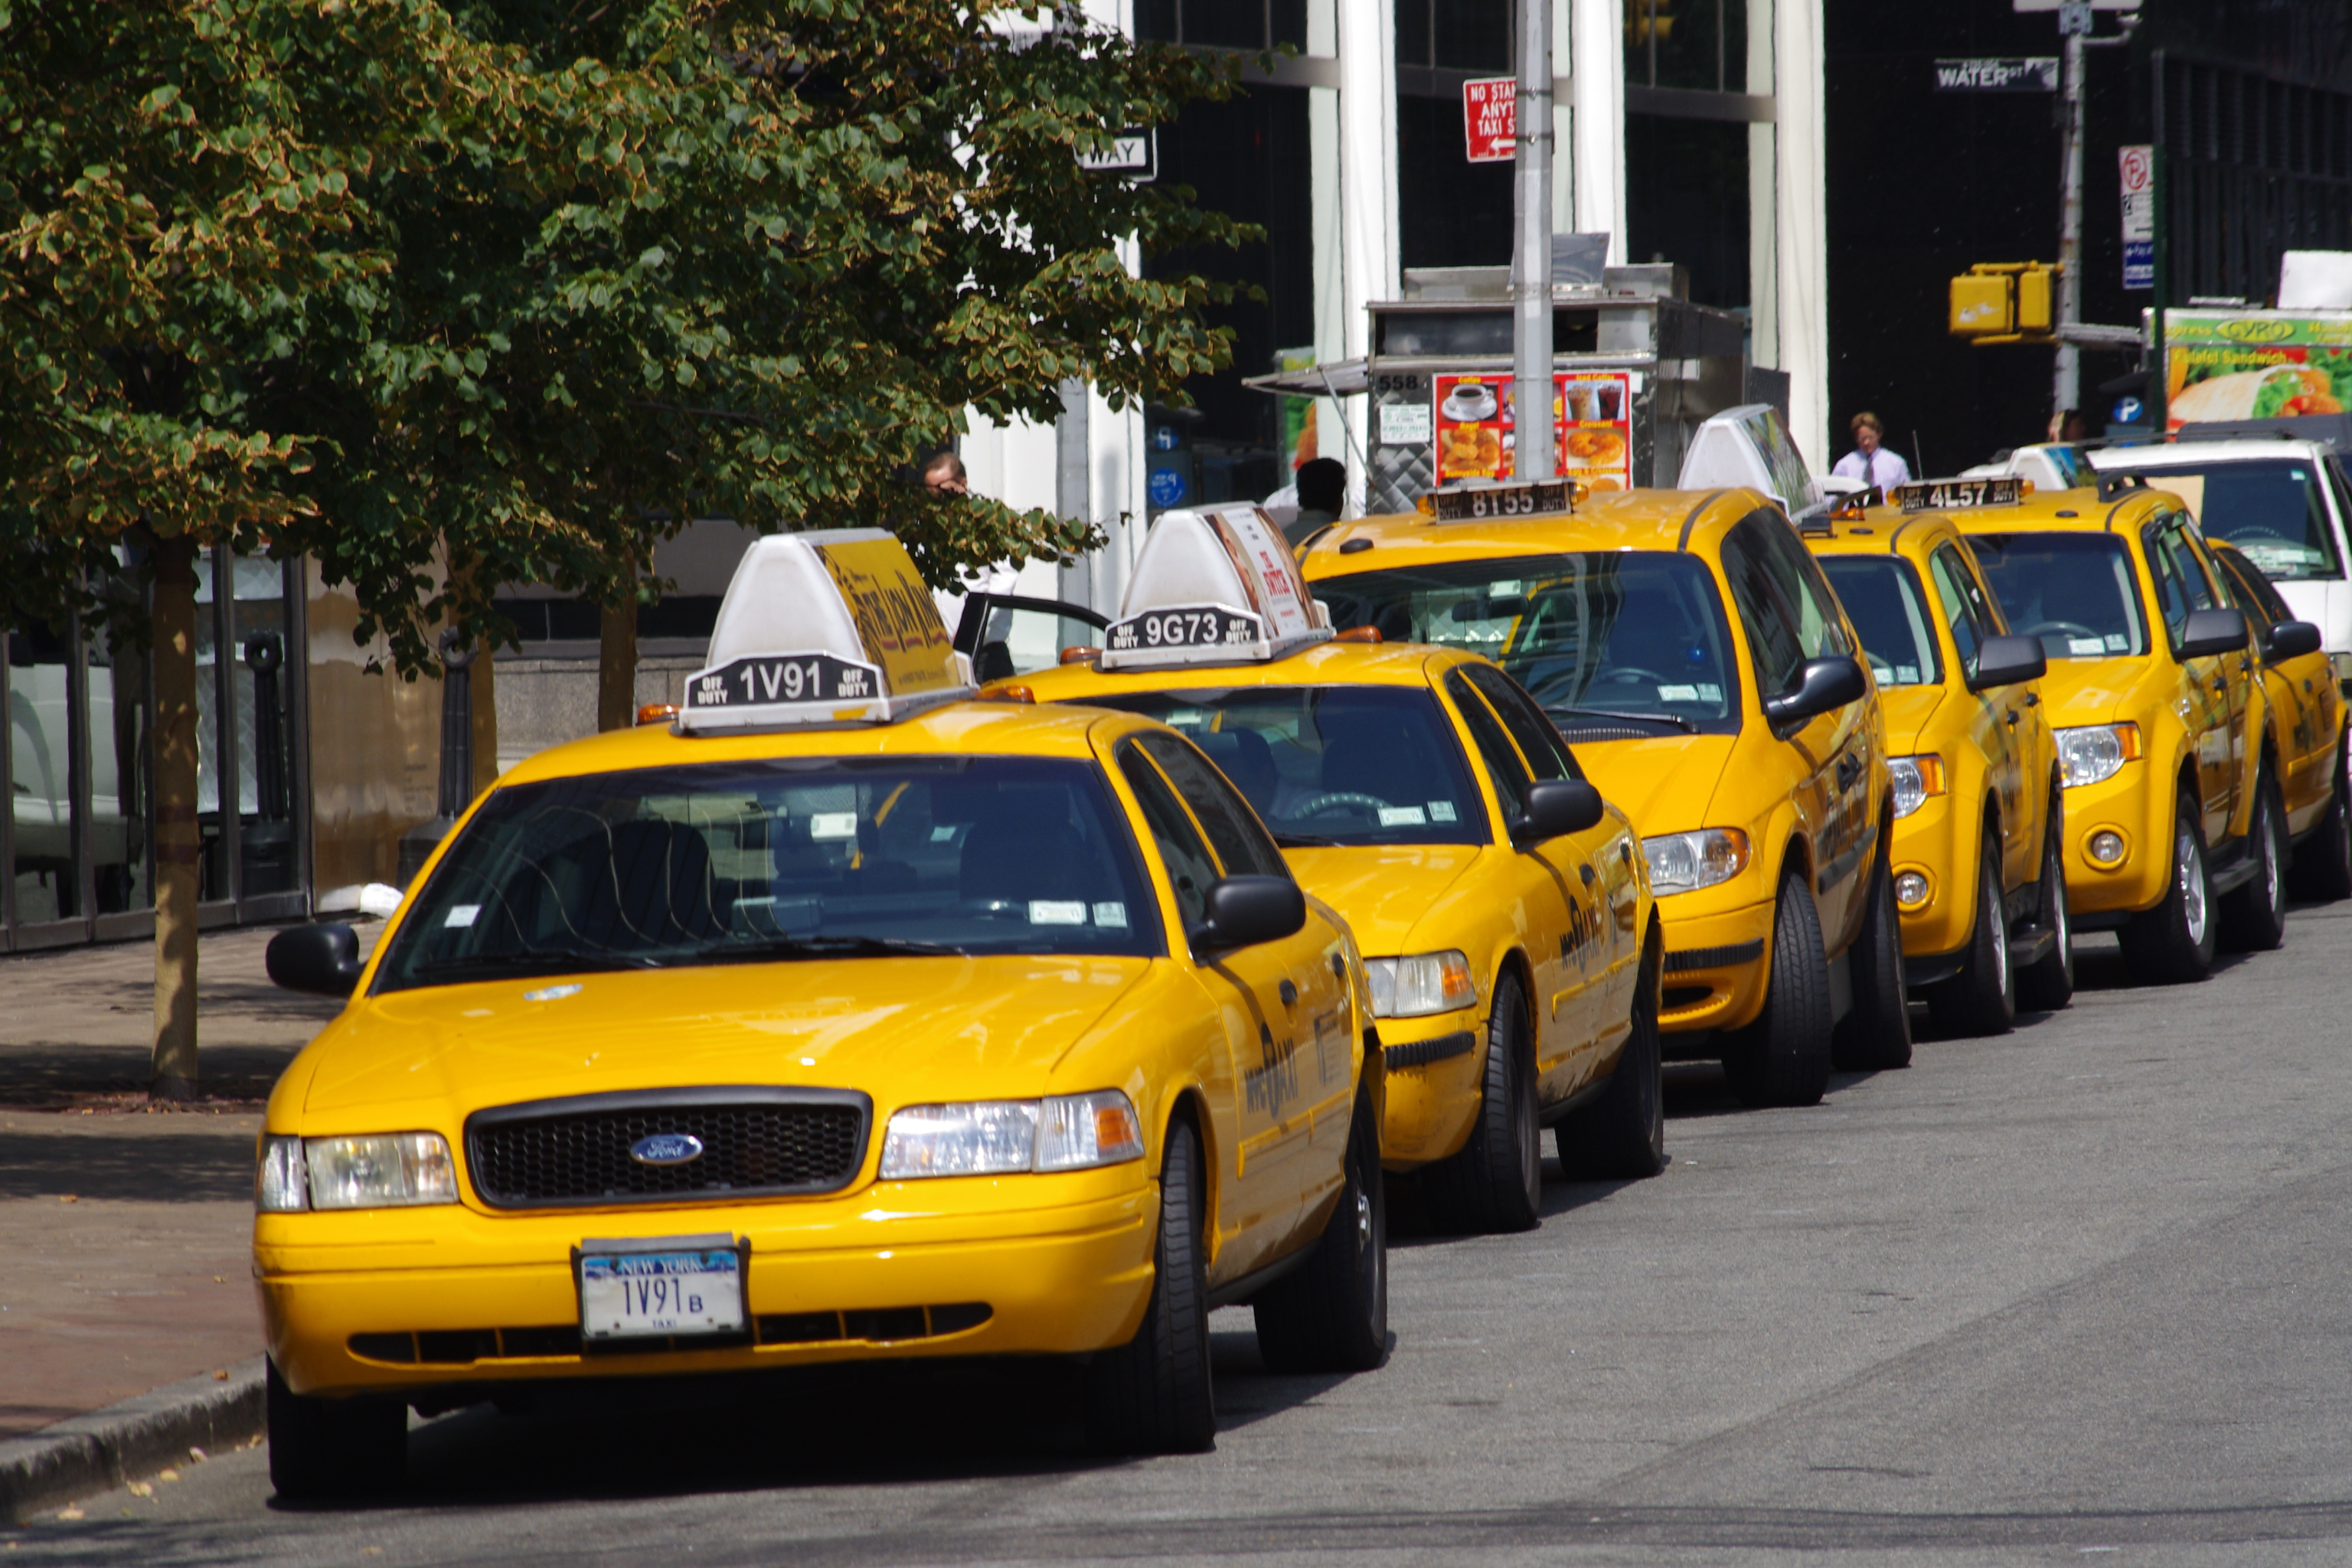 File:Yellow Cabs in New York.JPG - Wikimedia Commons